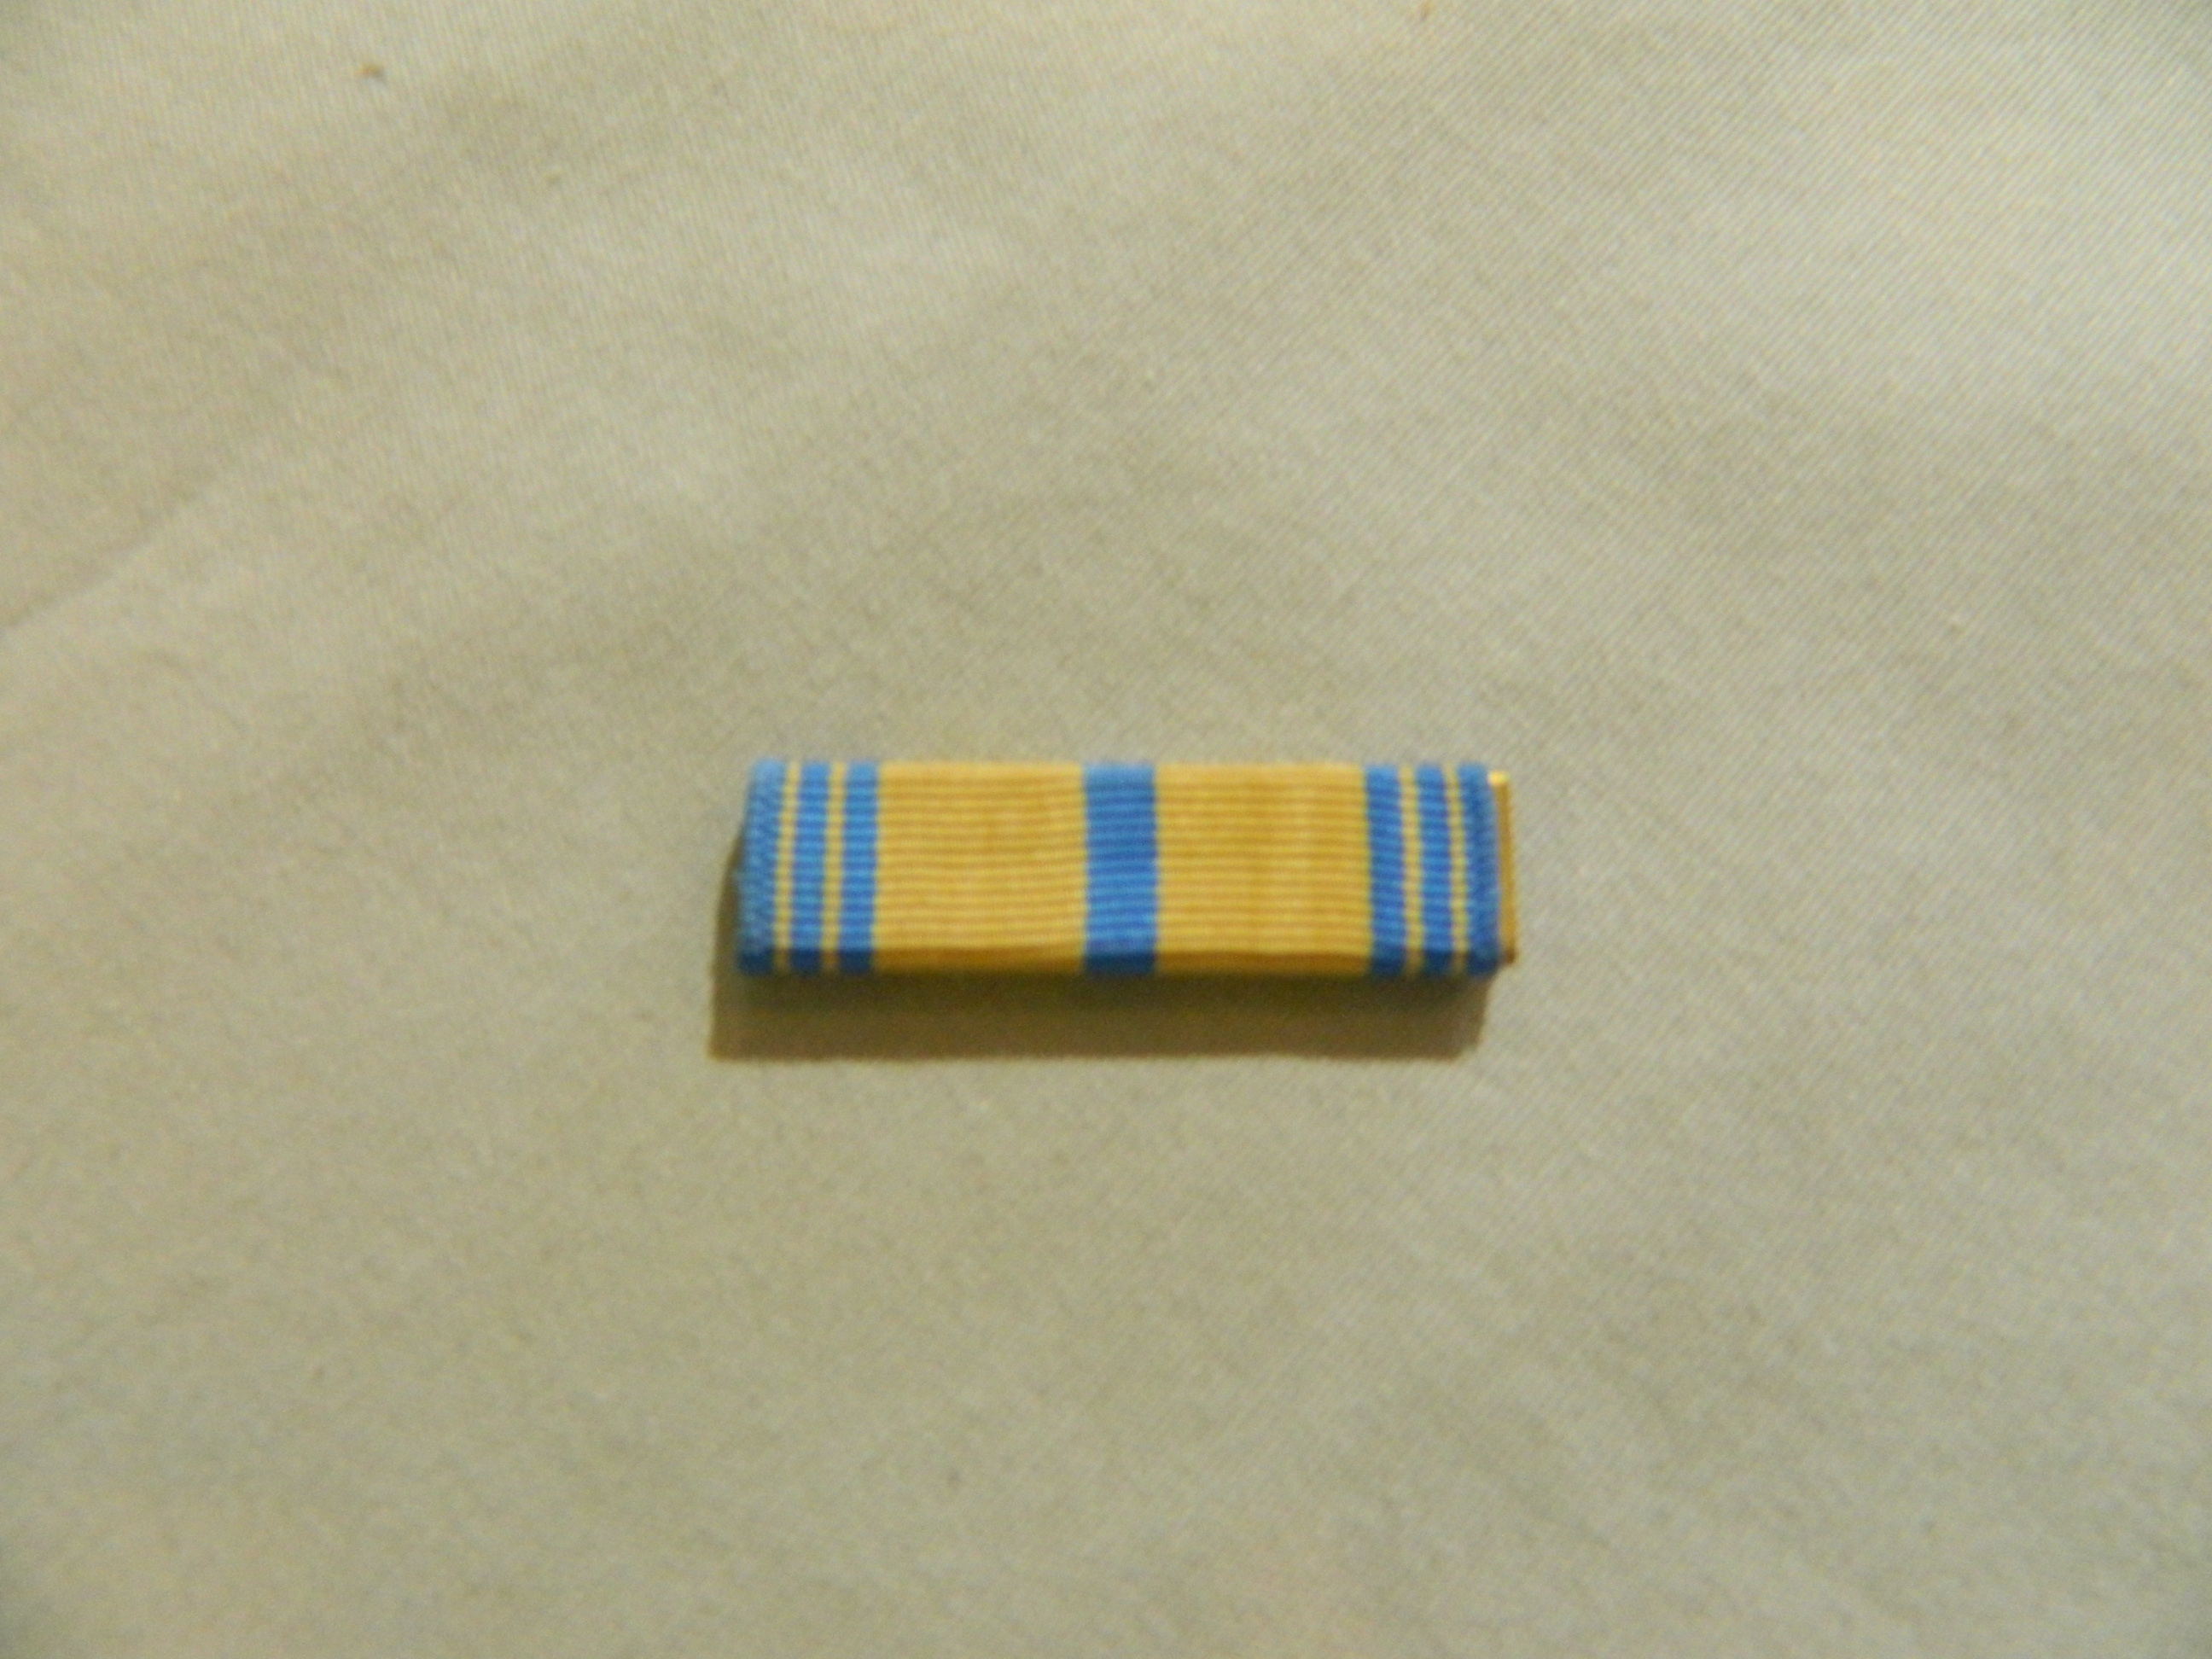 Ribbon: Armed Forces Reserve Medal